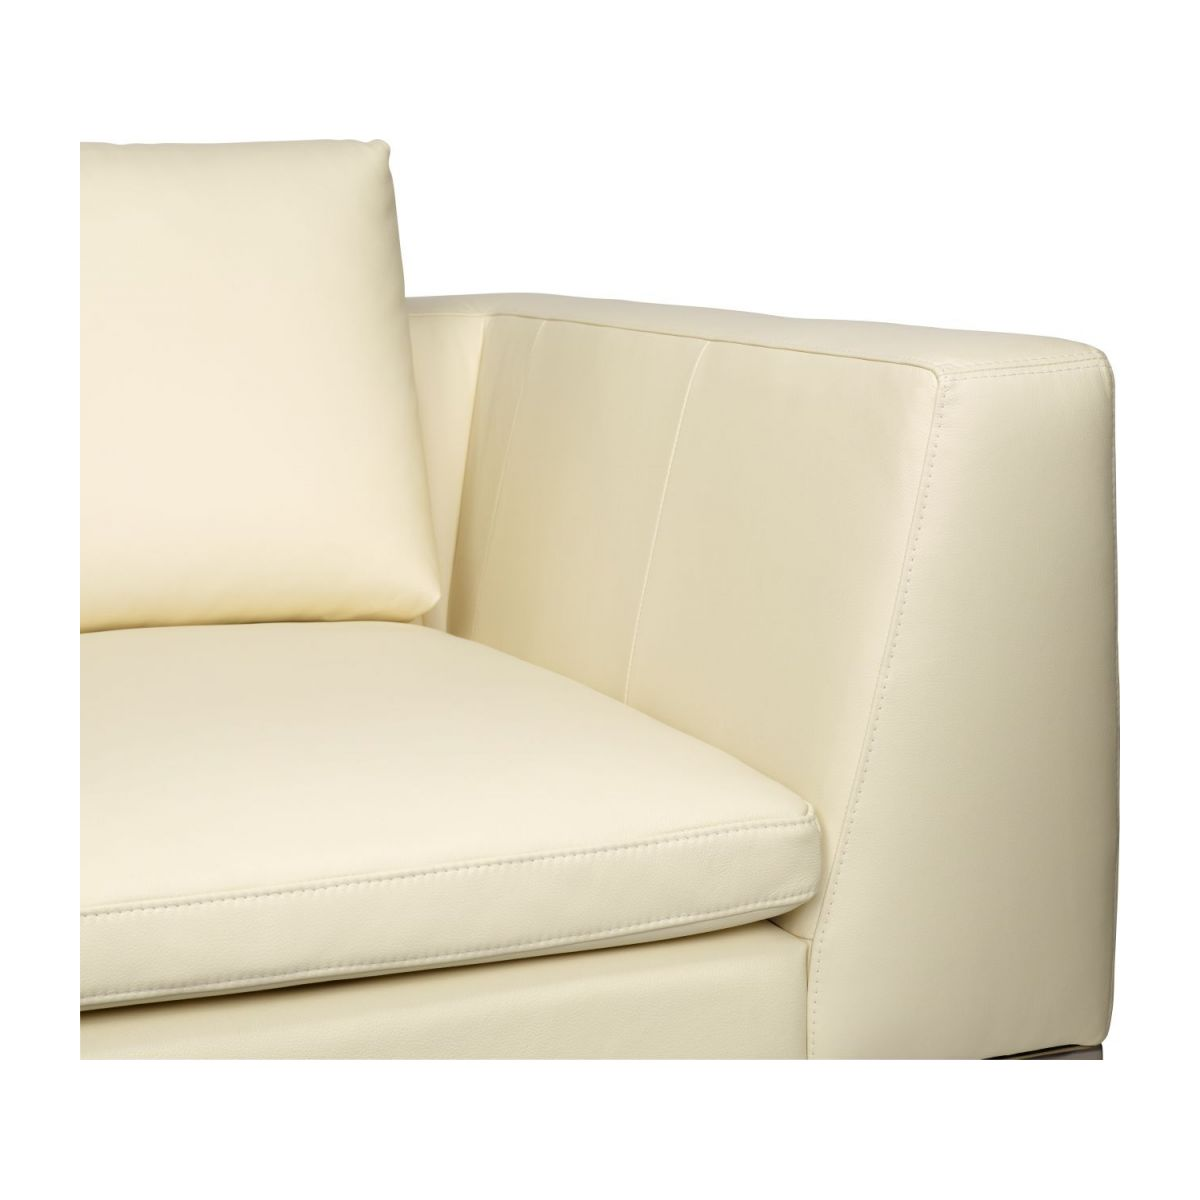 2 seater sofa in Eton veined leather, cream n°7